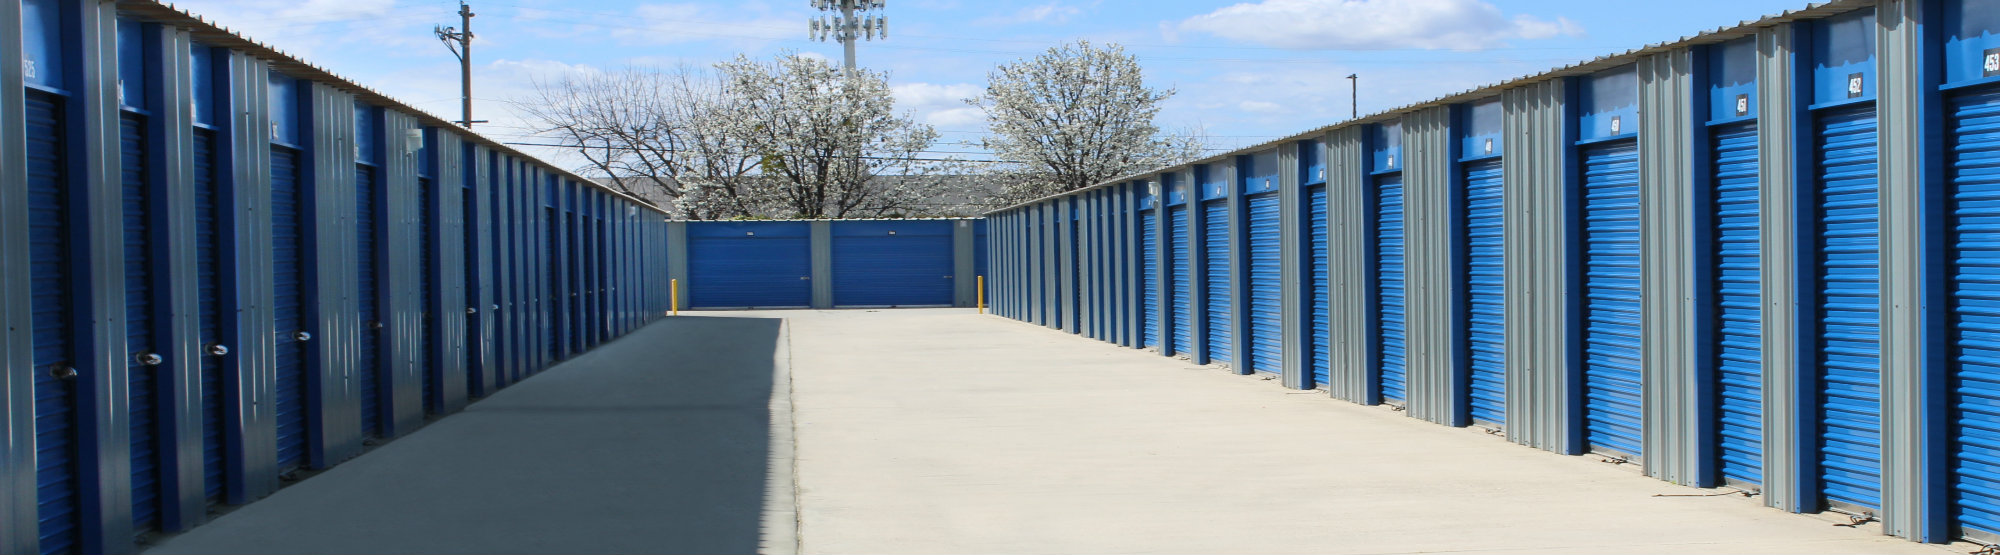 Rows of self storage units in California